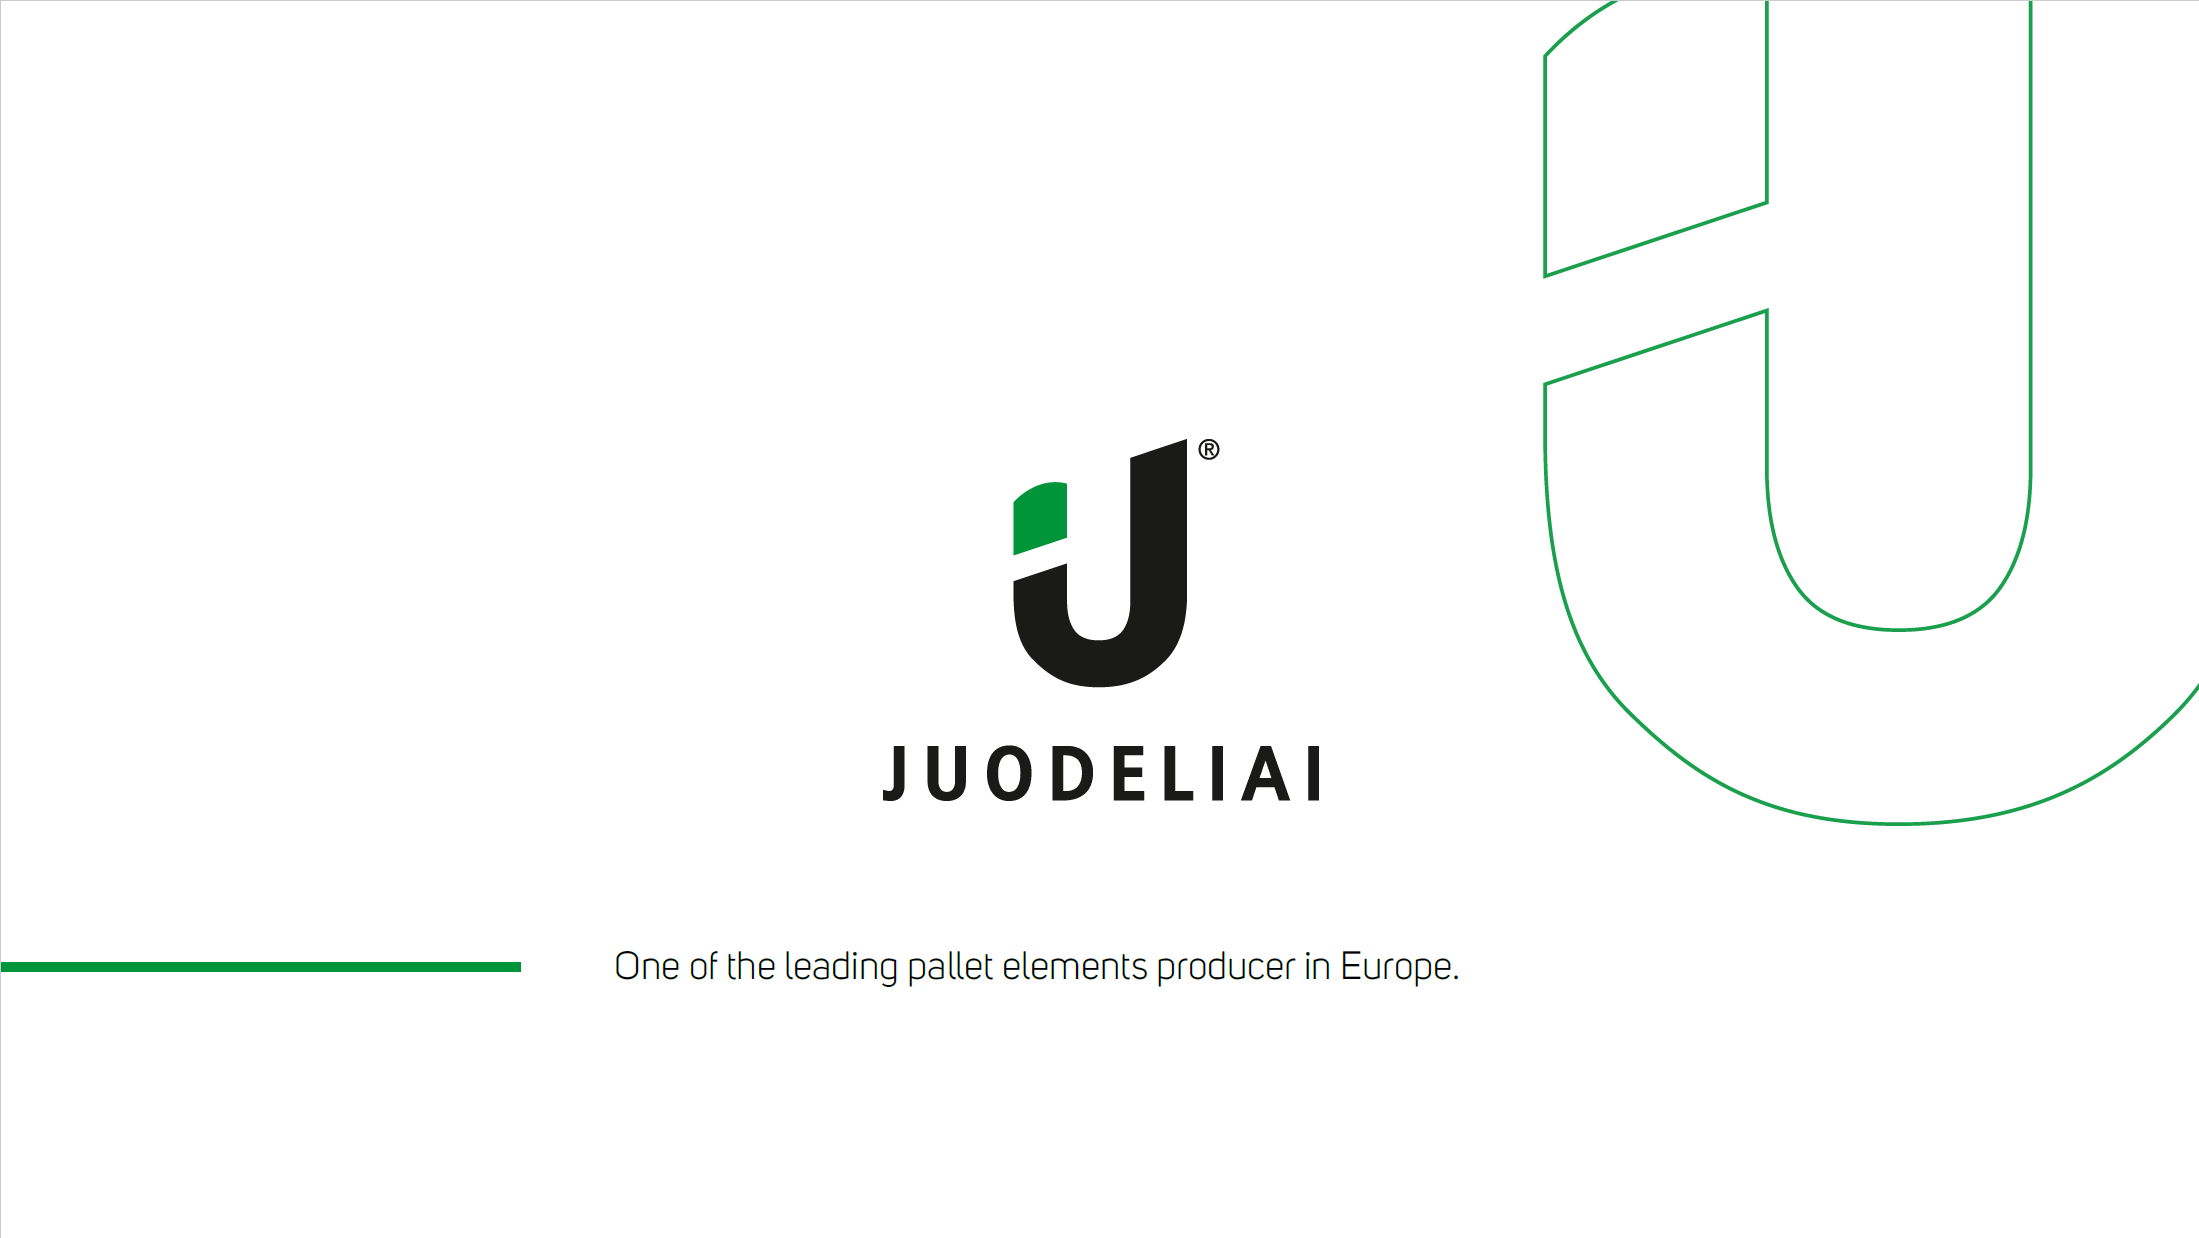 UAB Juodeliai one of the leading wooden pallet elements producer in Europe